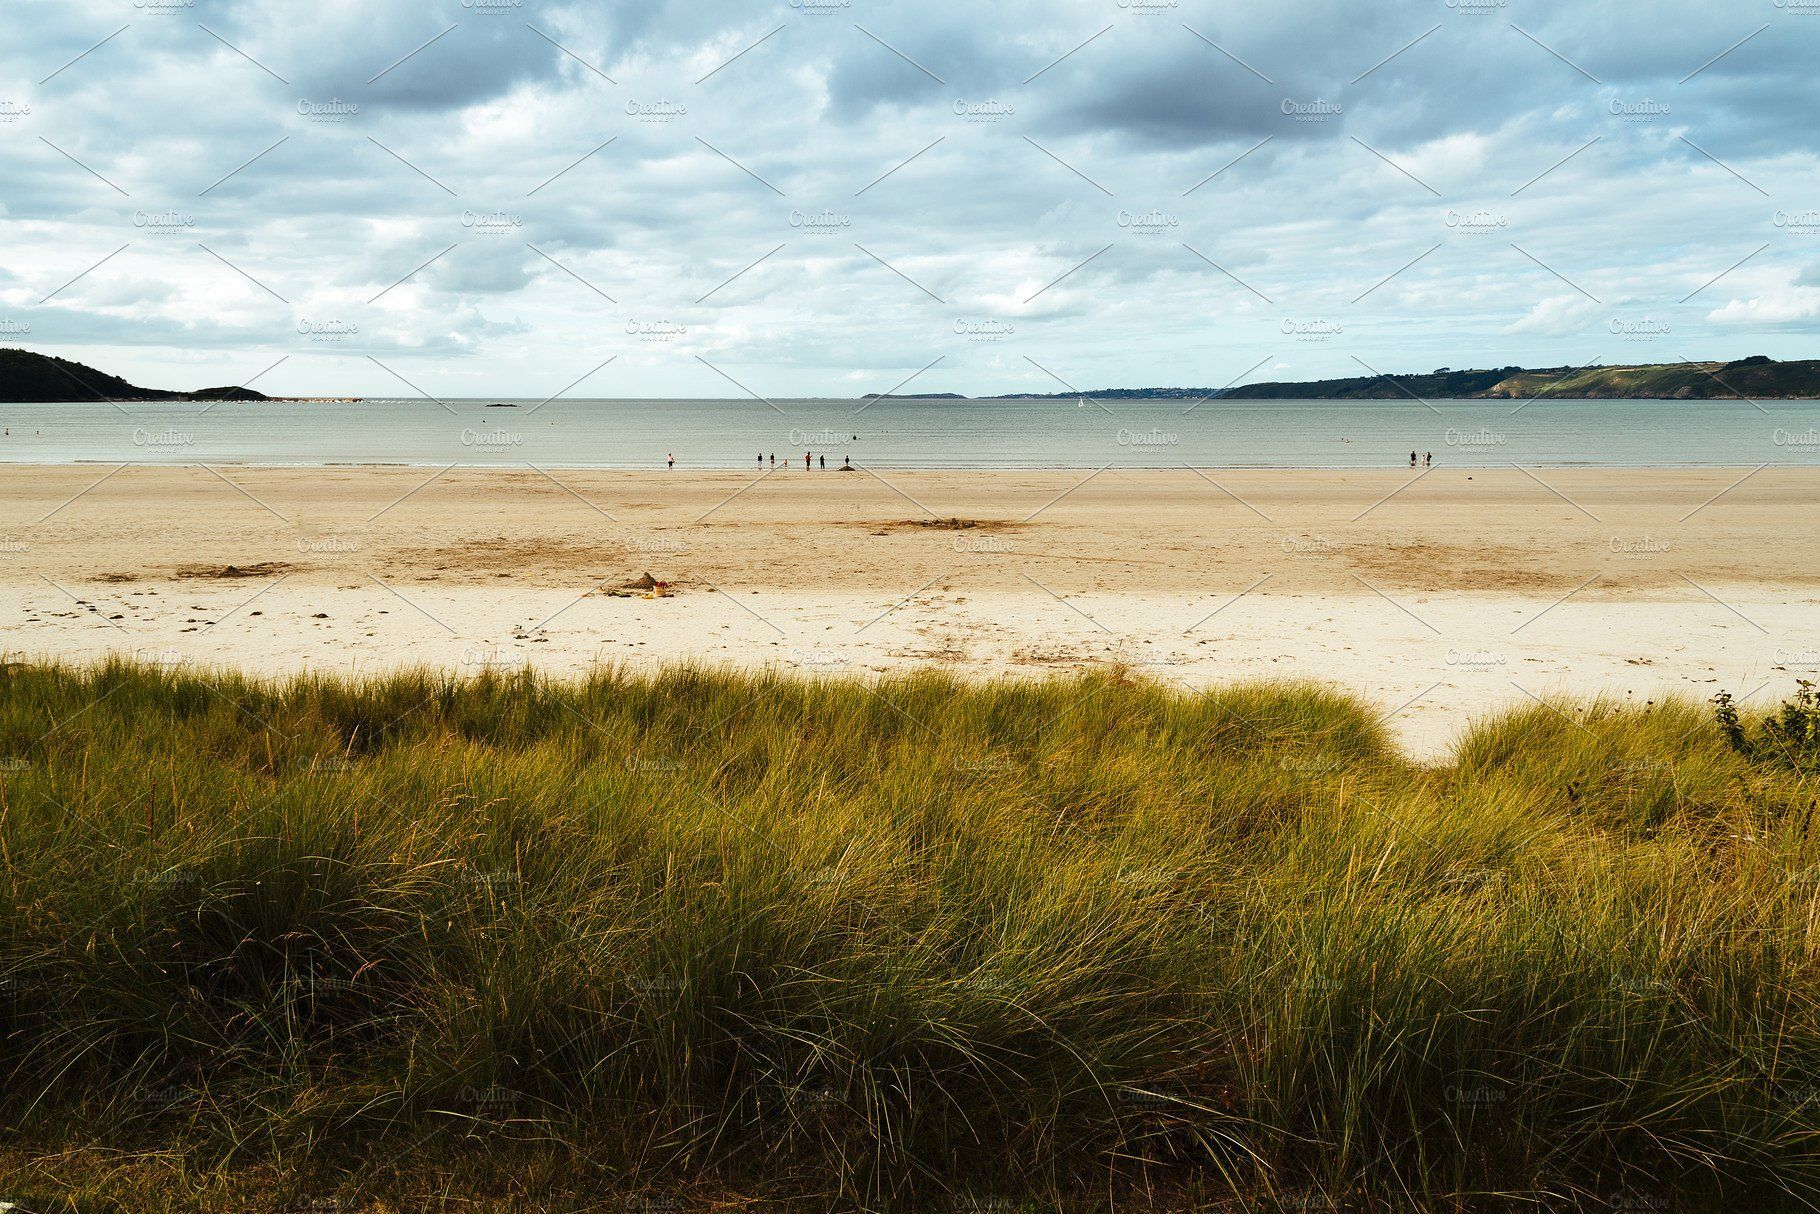 Tranquil Beach Against Cloudy Sky In Landscape Scenery Landscape Photography Cloudy